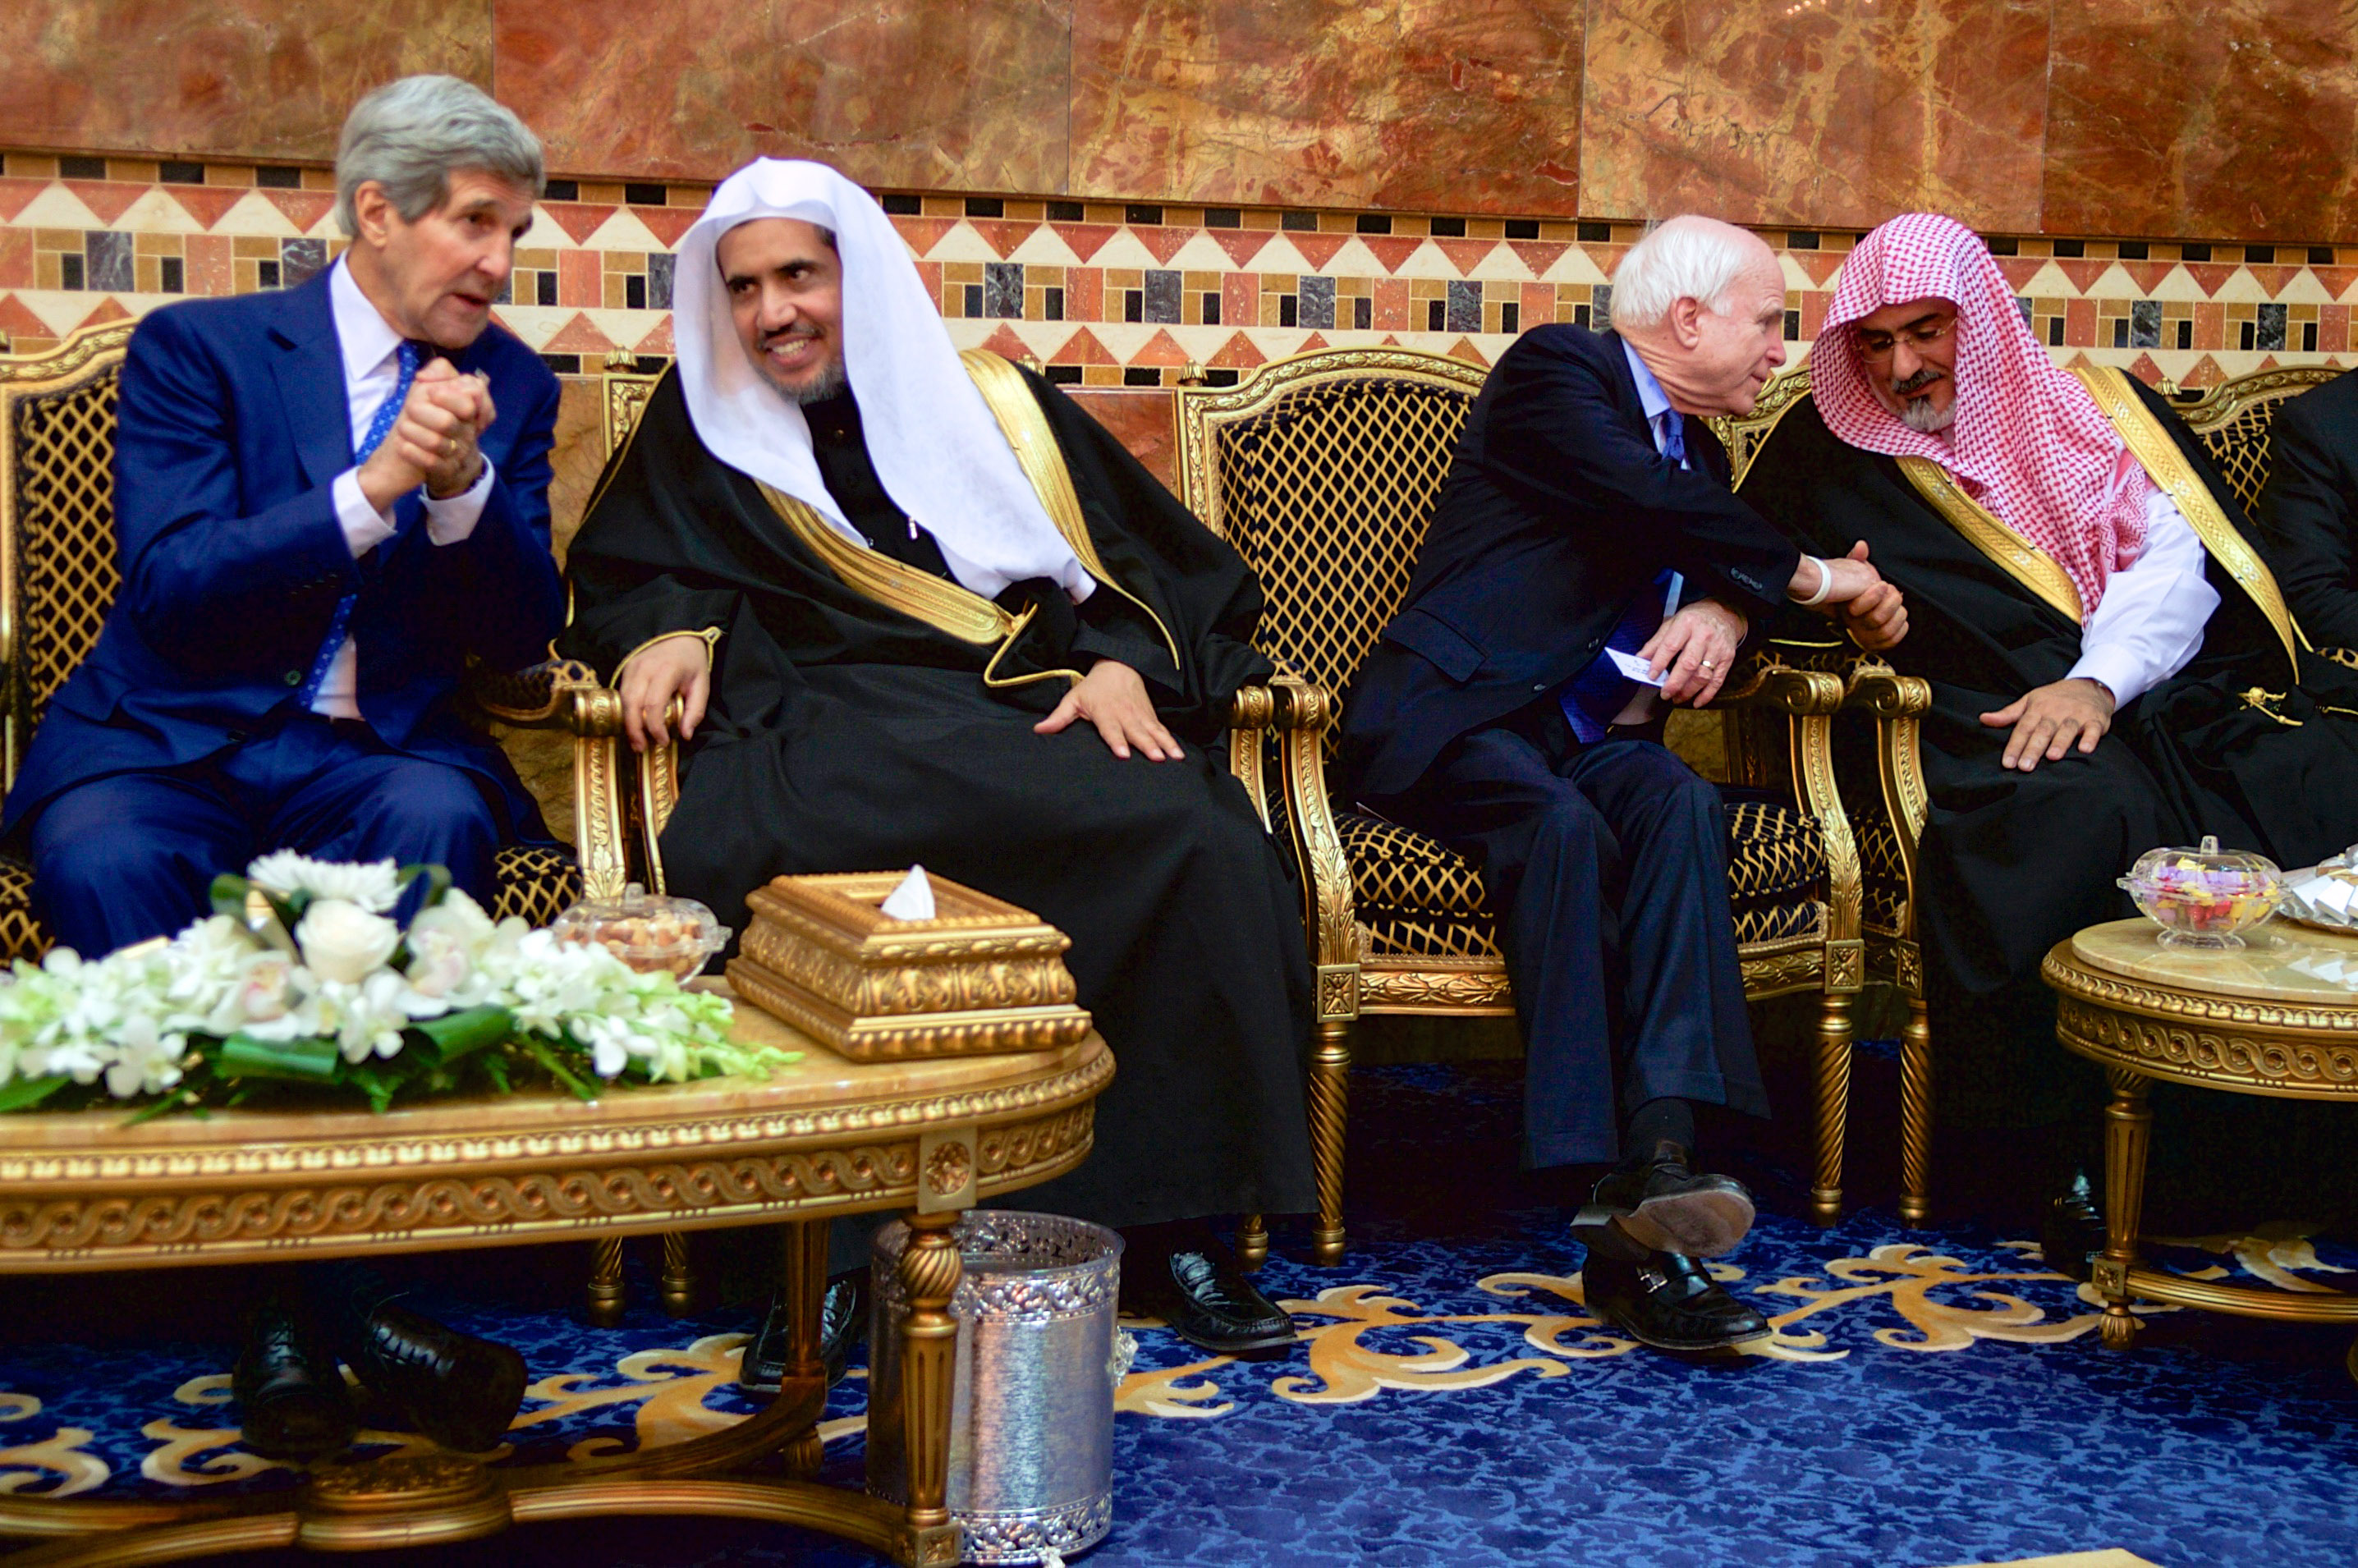 Secretary_Kerry_and_Senator_McCain_Chat_With_Members_of_the_Saudi_Royal_Family (1)